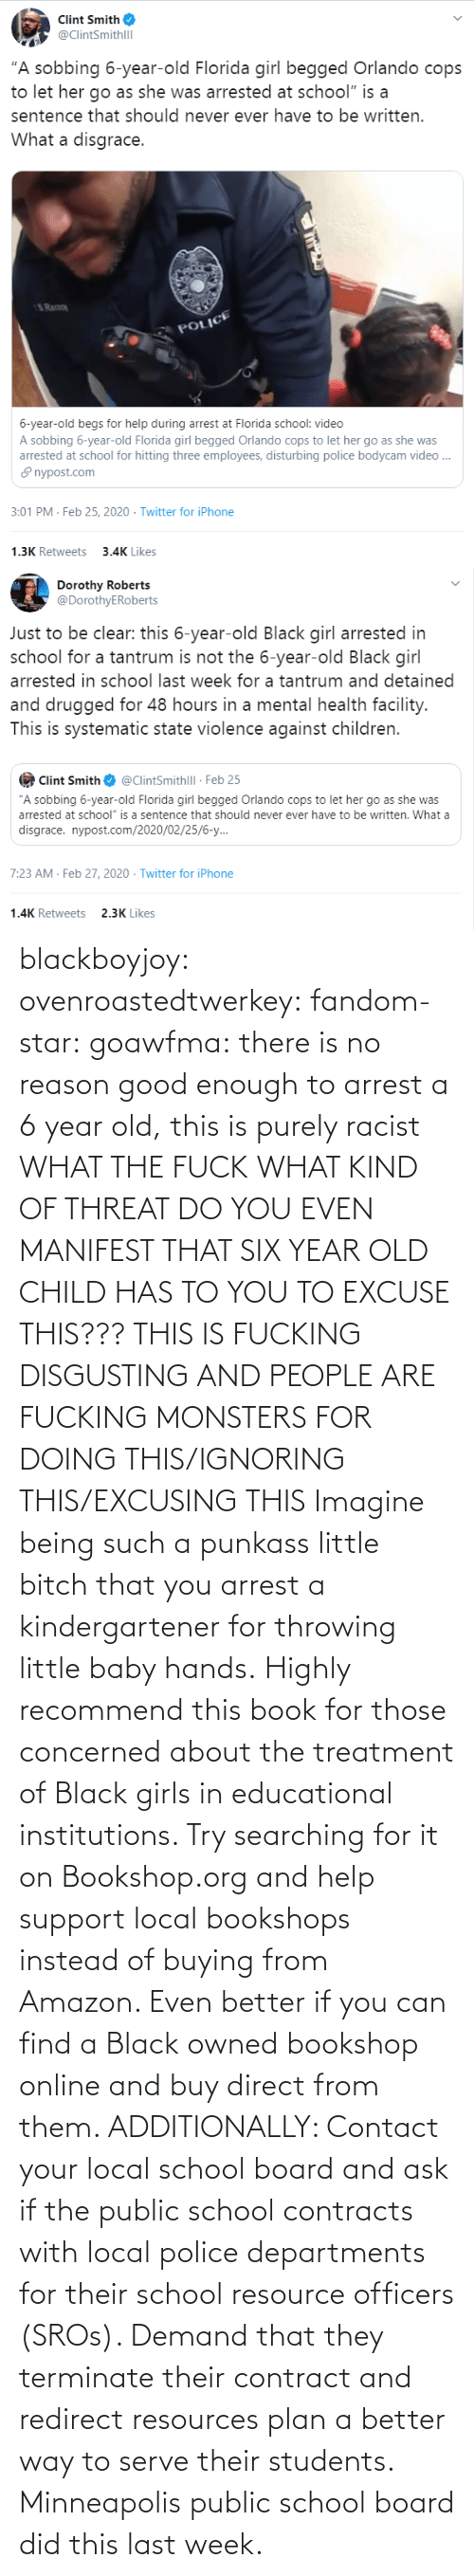 About: blackboyjoy:  ovenroastedtwerkey:  fandom-star:  goawfma: there is no reason good enough to arrest a 6 year old, this is purely racist WHAT THE FUCK WHAT KIND OF THREAT DO YOU EVEN MANIFEST THAT SIX YEAR OLD CHILD HAS TO YOU TO EXCUSE THIS??? THIS IS FUCKING DISGUSTING AND PEOPLE ARE FUCKING MONSTERS FOR DOING THIS/IGNORING THIS/EXCUSING THIS    Imagine being such a punkass little bitch that you arrest a kindergartener for throwing little baby hands.  Highly recommend this book for those concerned about the treatment of Black girls in educational institutions.  Try searching for it on Bookshop.org and help support local bookshops instead of buying from Amazon. Even better if you can find a Black owned bookshop online and buy direct from them.  ADDITIONALLY: Contact your local school board and ask if the public school contracts with local police departments for their school resource officers (SROs). Demand that they terminate their contract and redirect resources plan a better way to serve their students. Minneapolis public school board did this last week.